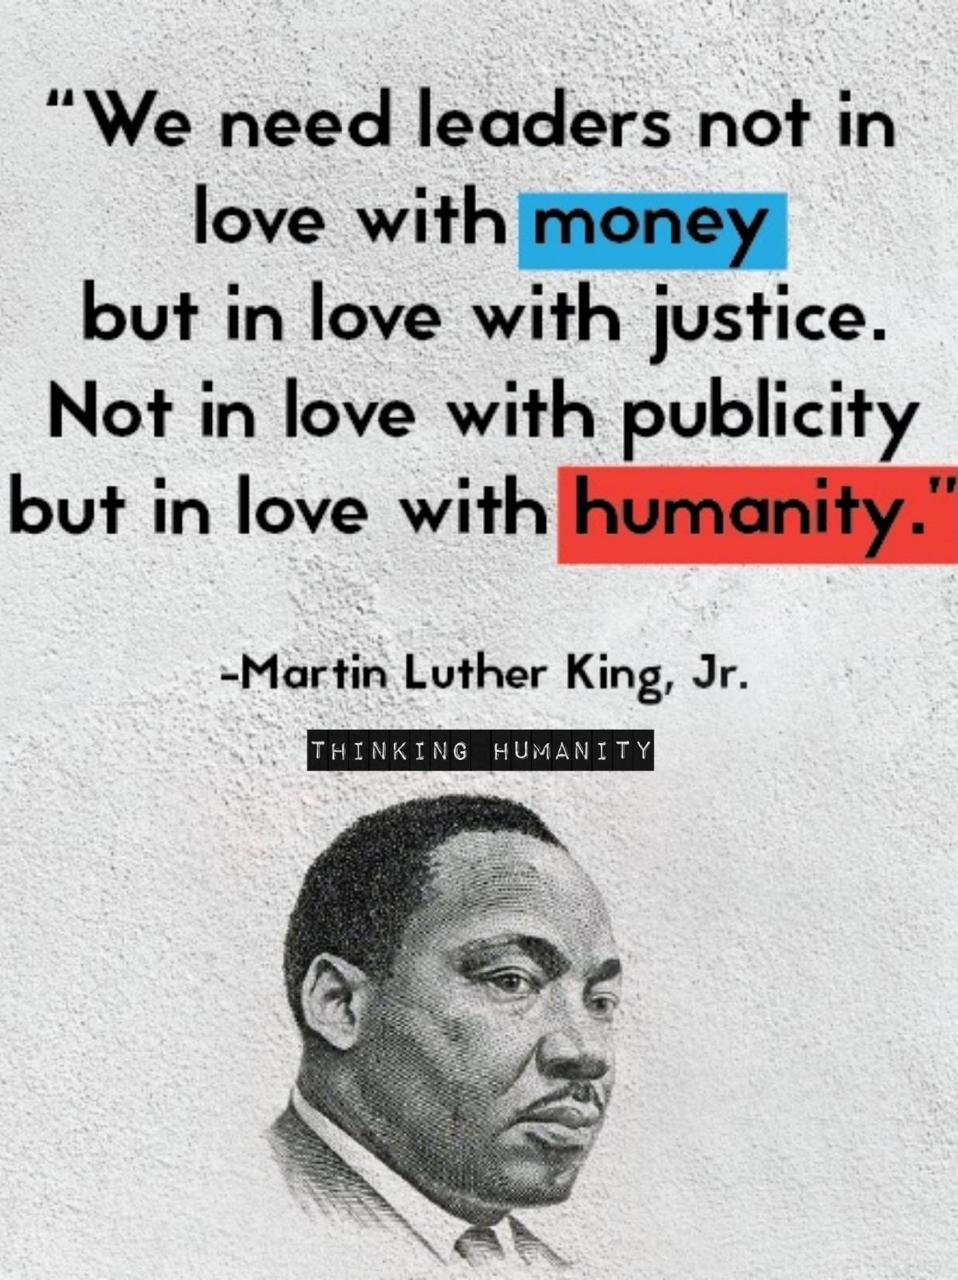 """30 Humanitarian Inspiring Quotes By Martin Luther King Jr. - """"We need leaders not in love with money but in love with justice. Not in love with publicity but in love with humanity."""""""